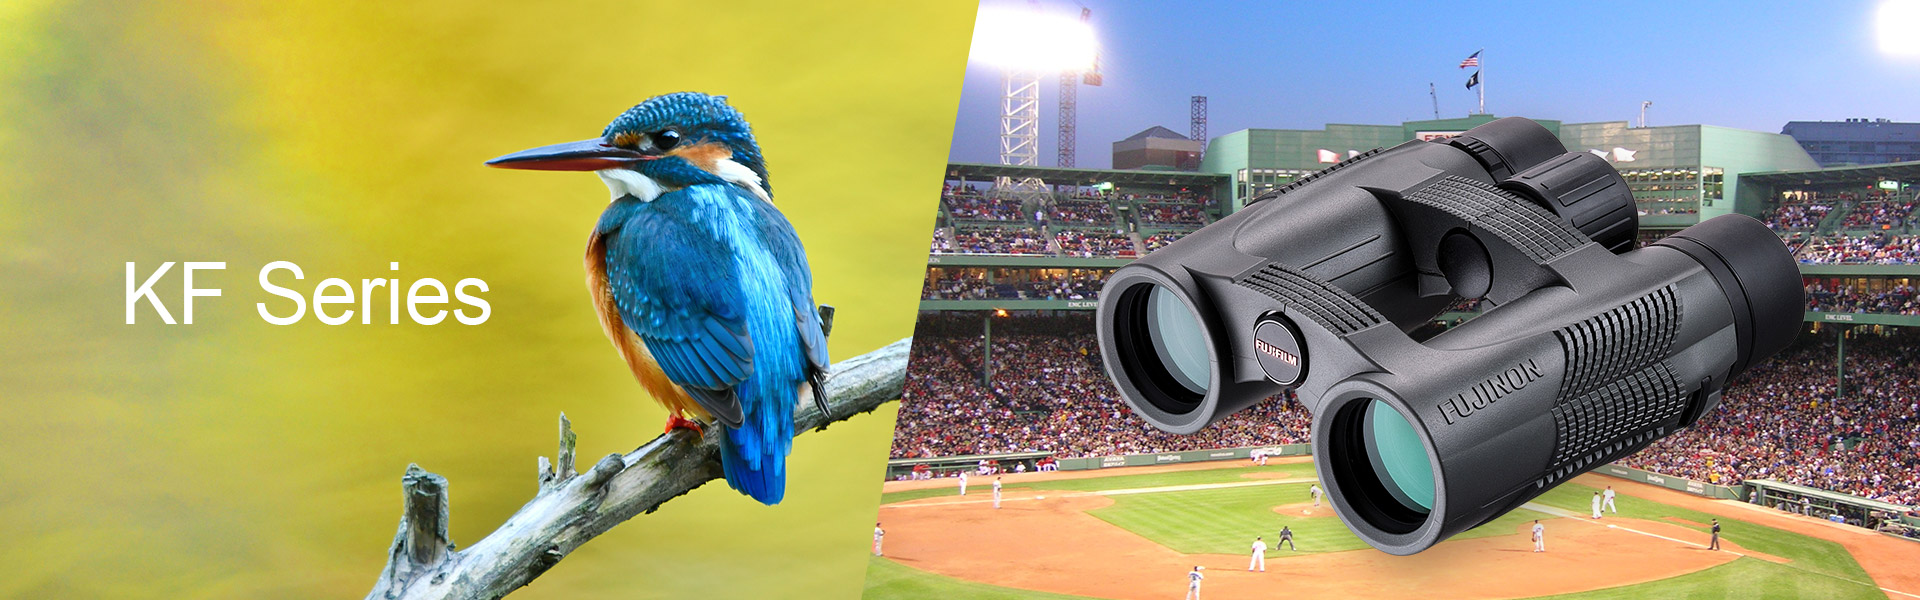 [photo] Close up of a bluebird on a tree branch with the text KF Series and a KF Series Binoculars with a packed baseball stadium in the background